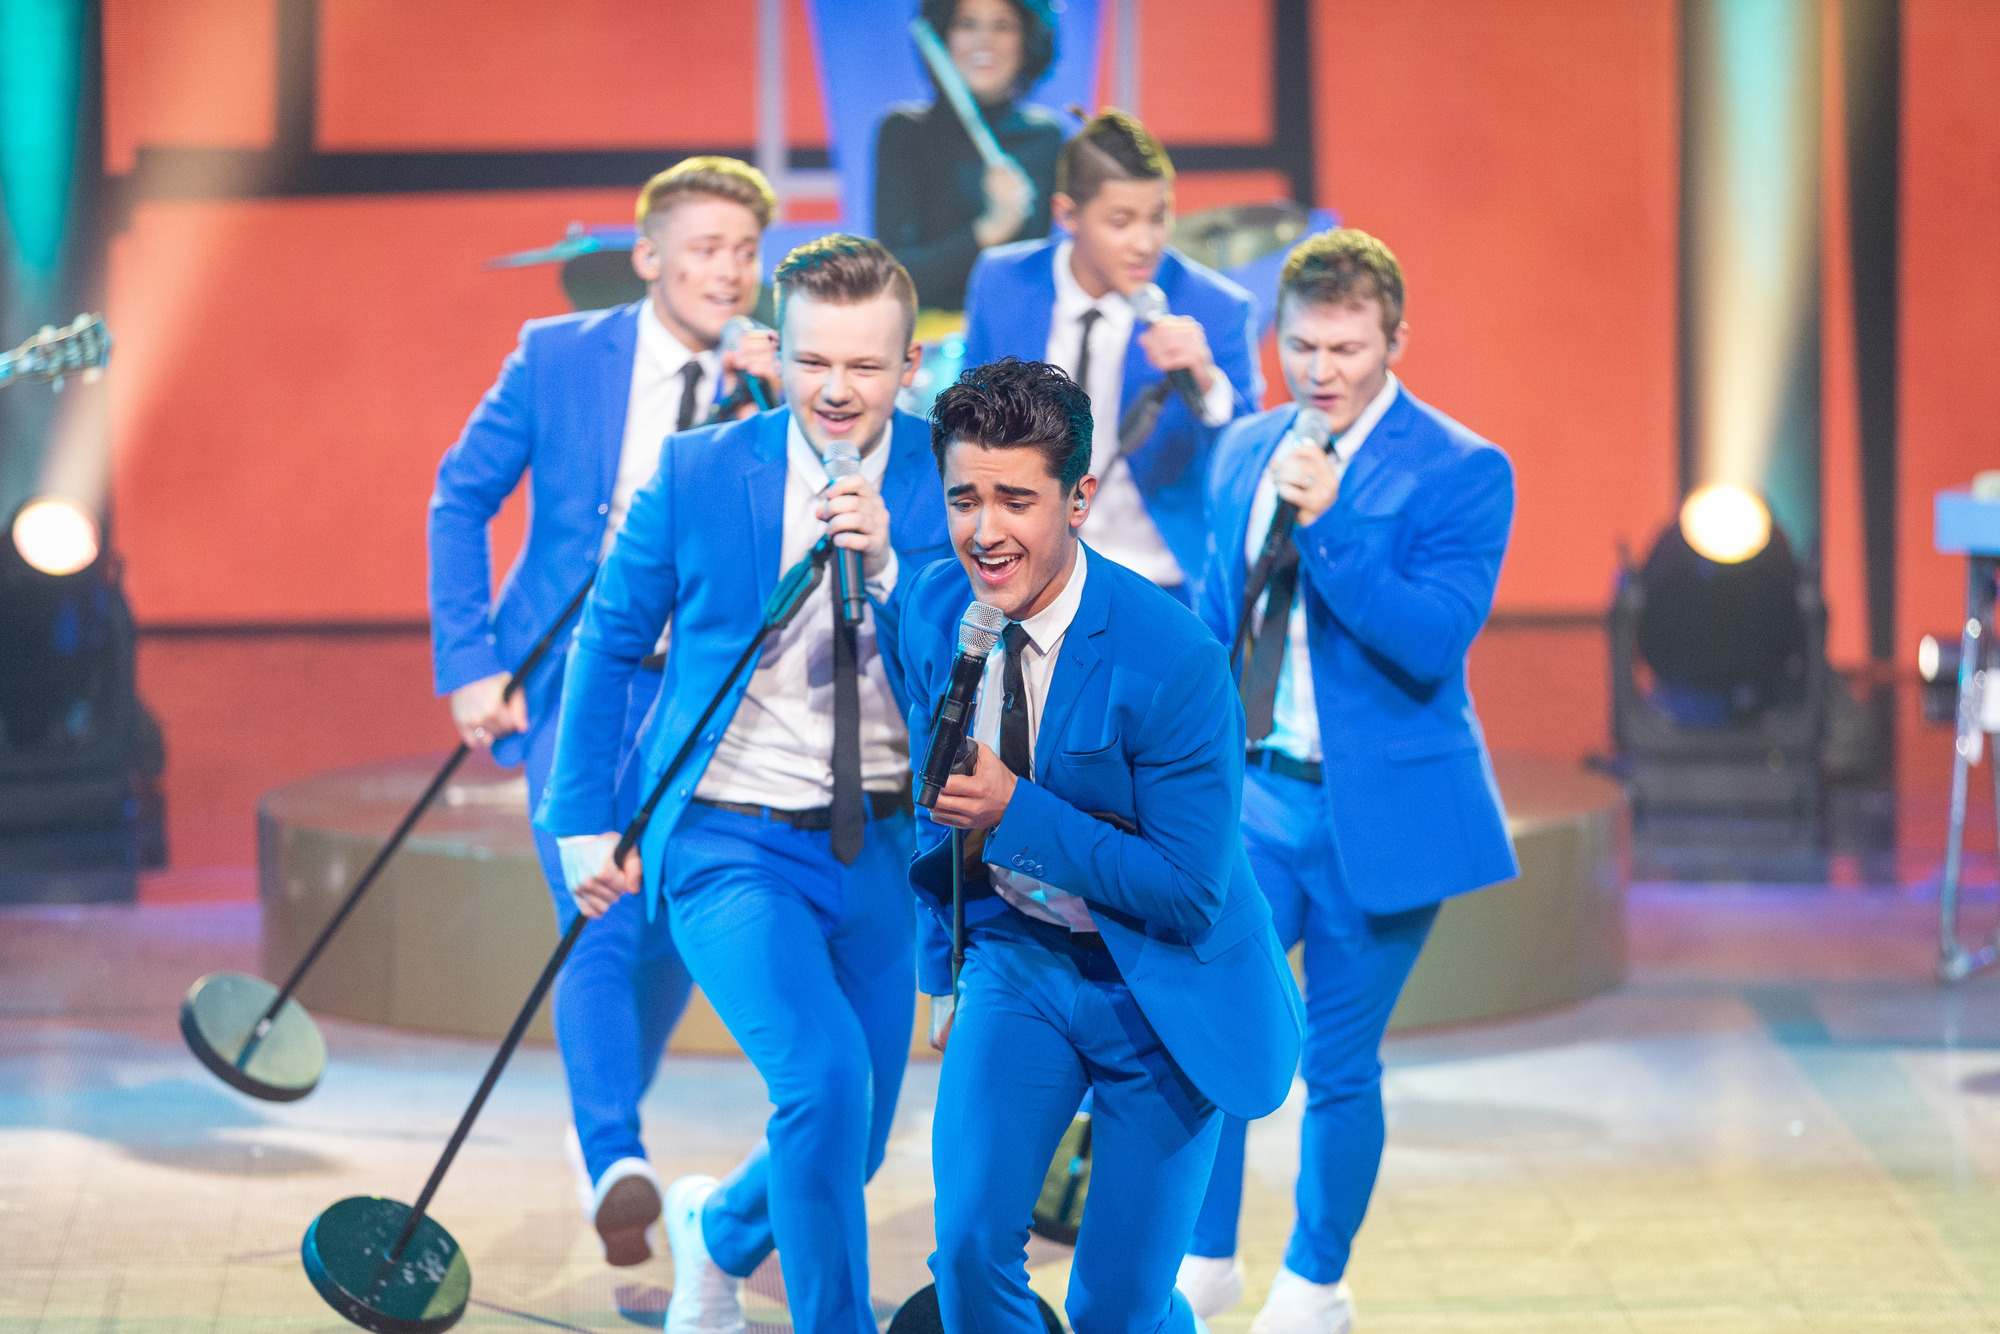 Five To Five won the Gary Barlow talent show (Picture: BBC)